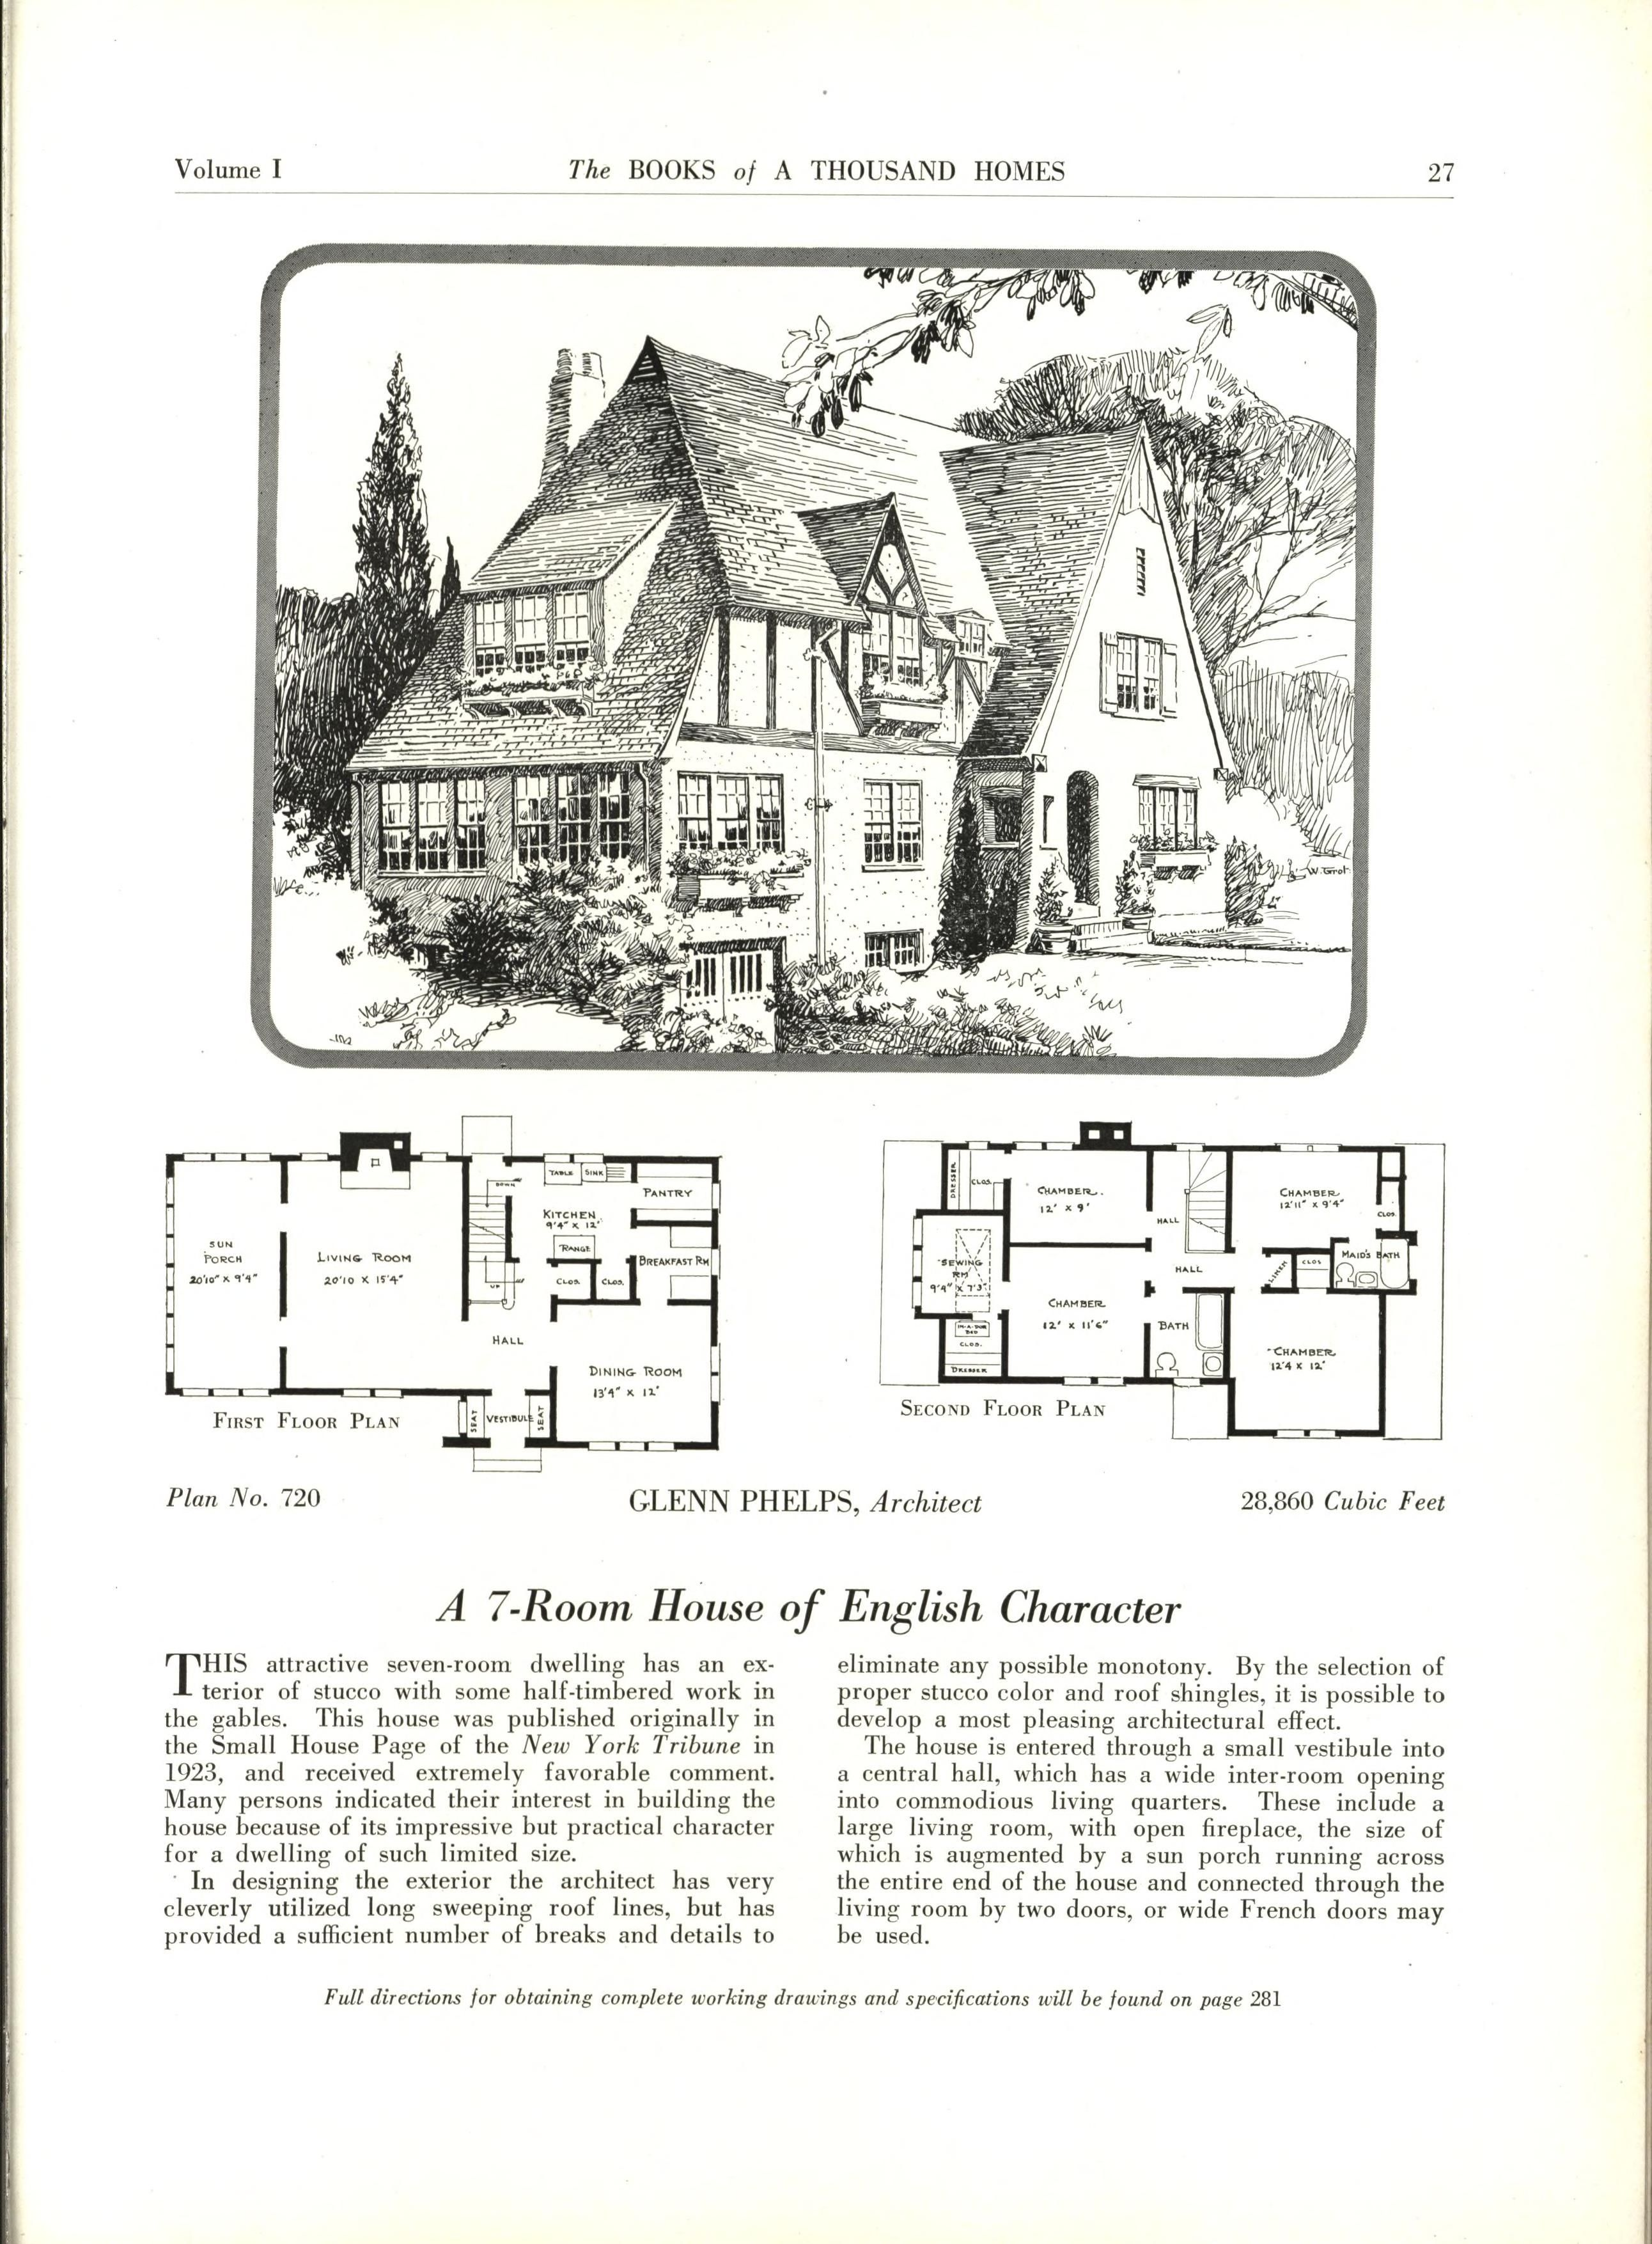 The Books Of A Thousand Homes Vol 1 Vintage House Plans How To Plan House Floor Plans